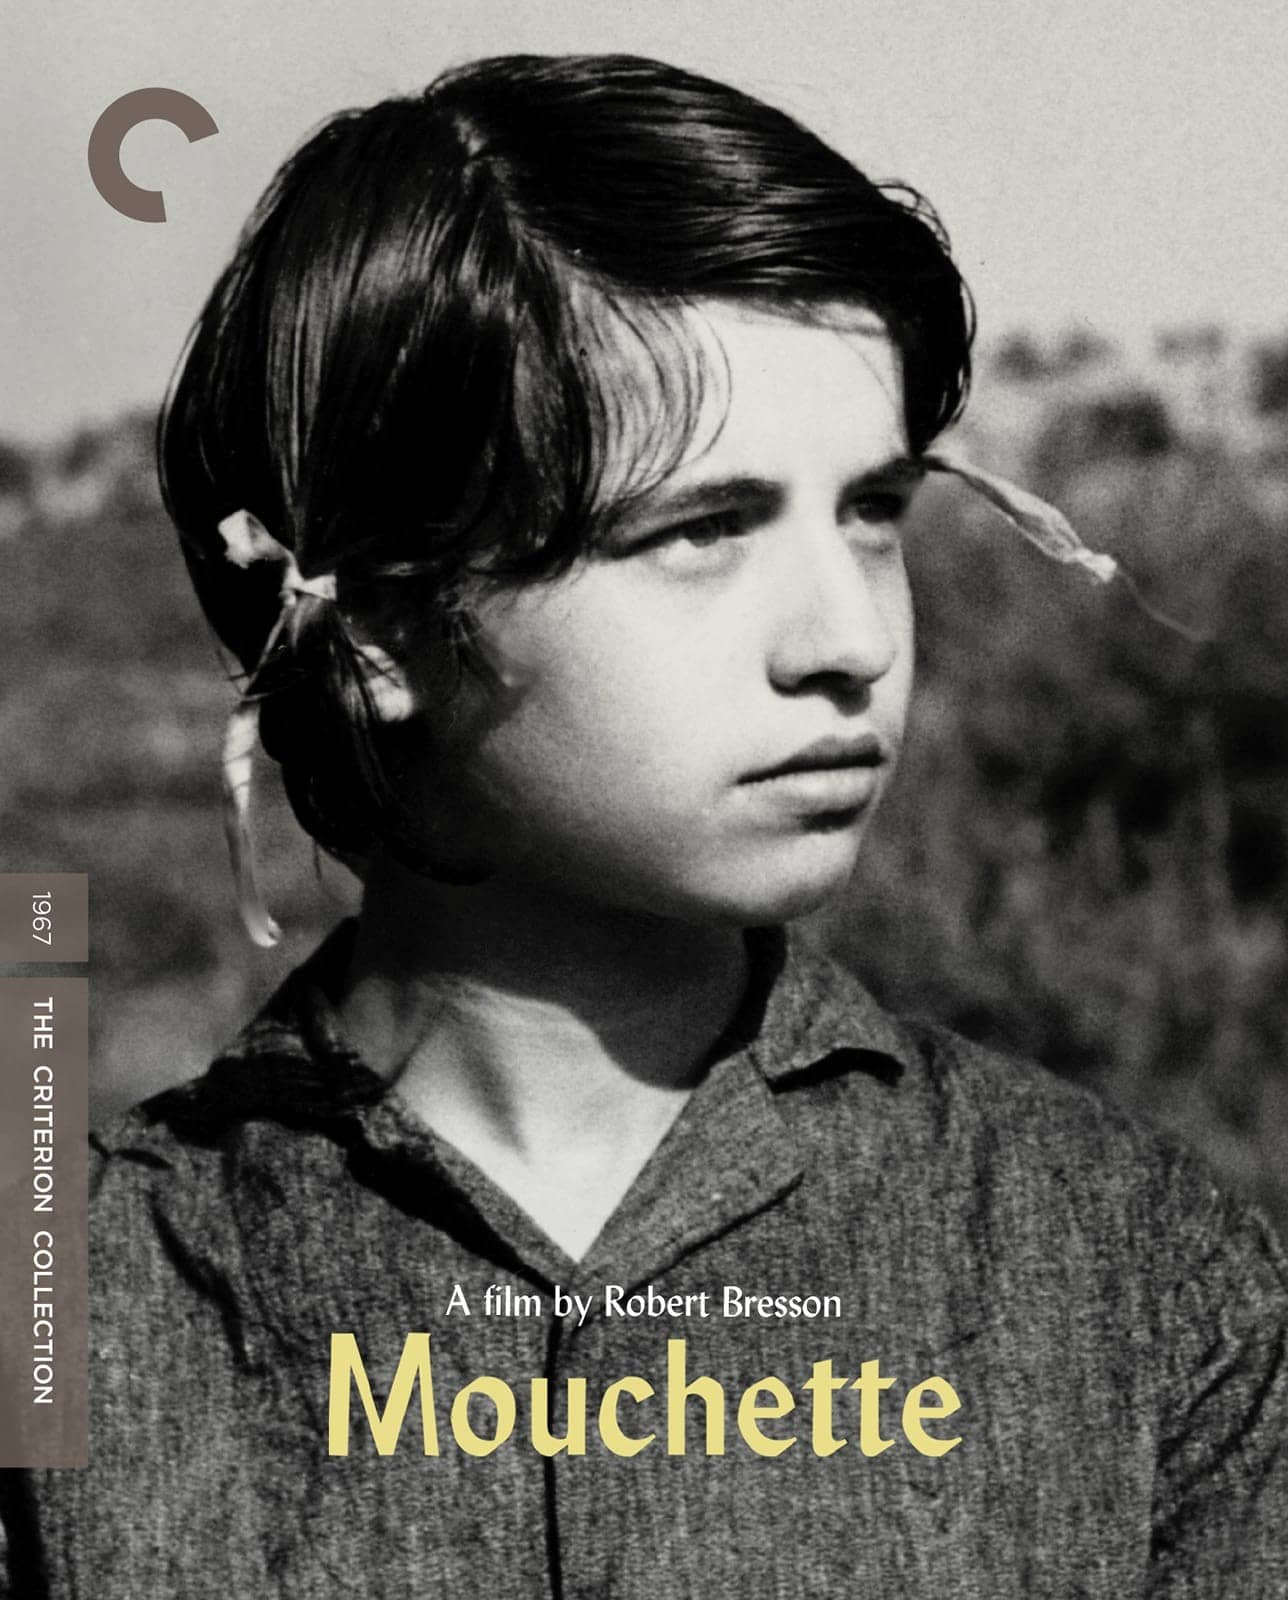 Mouchette The Criterion Collection Bluray Cover